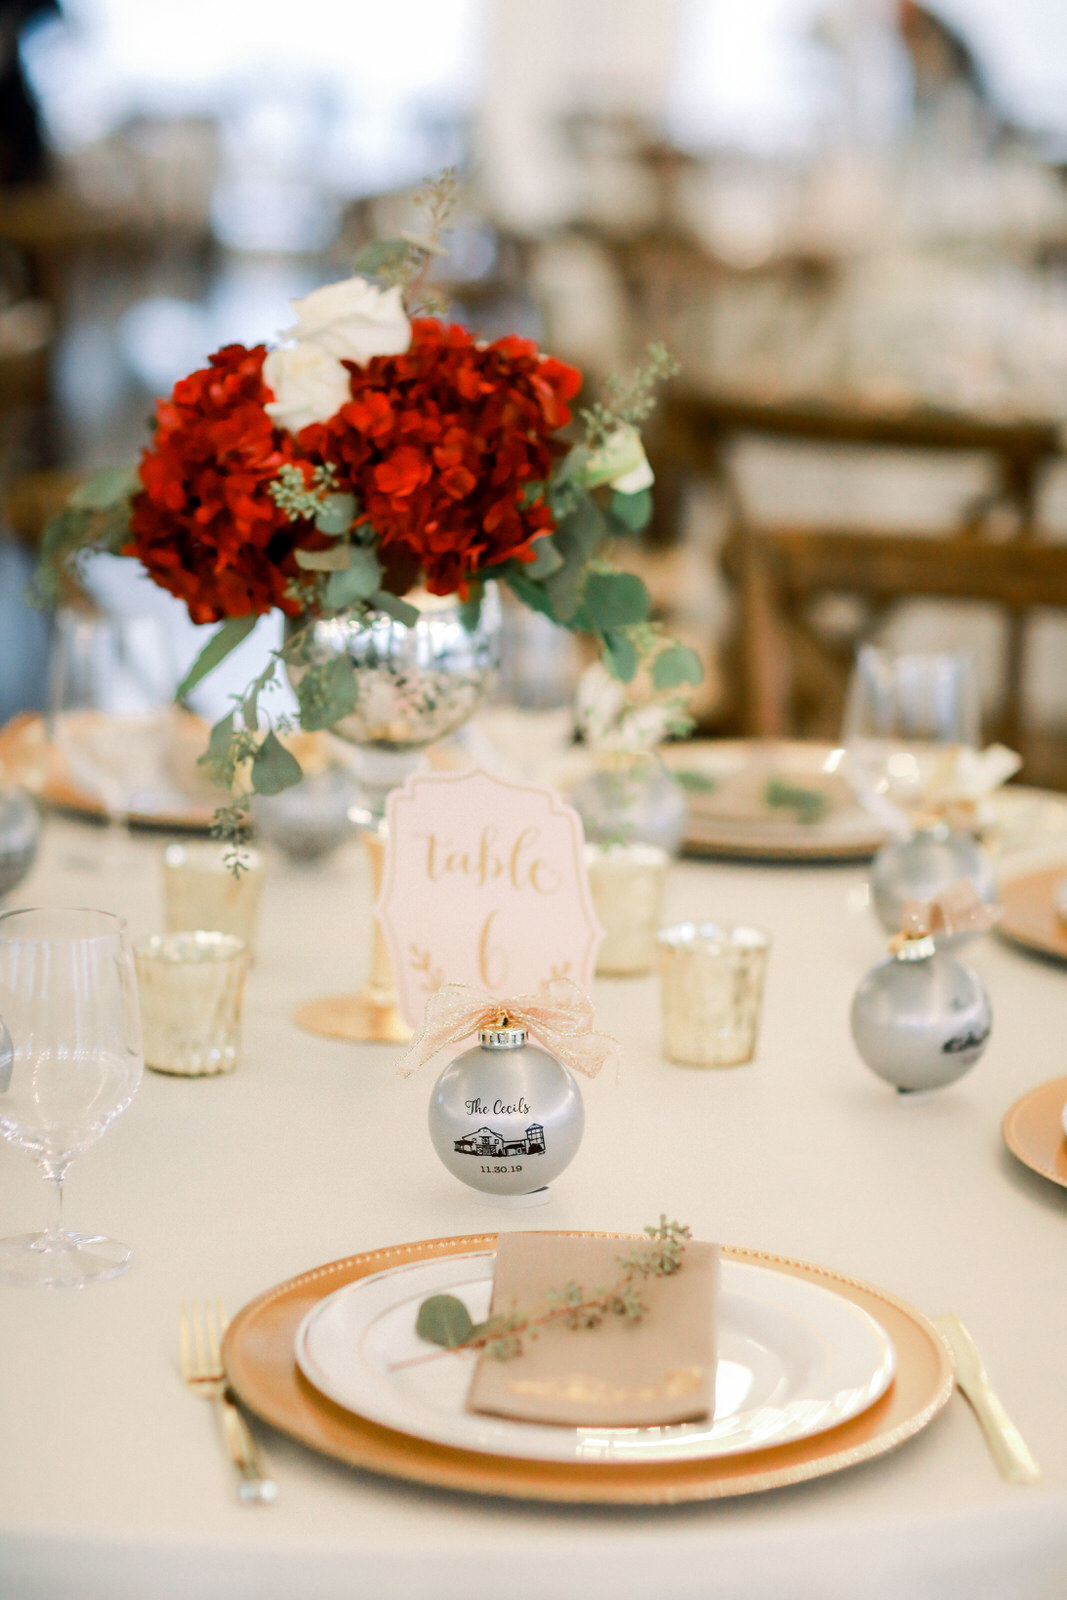 Wedding Photography Reception Details at Summerfield Farms in North Carolina